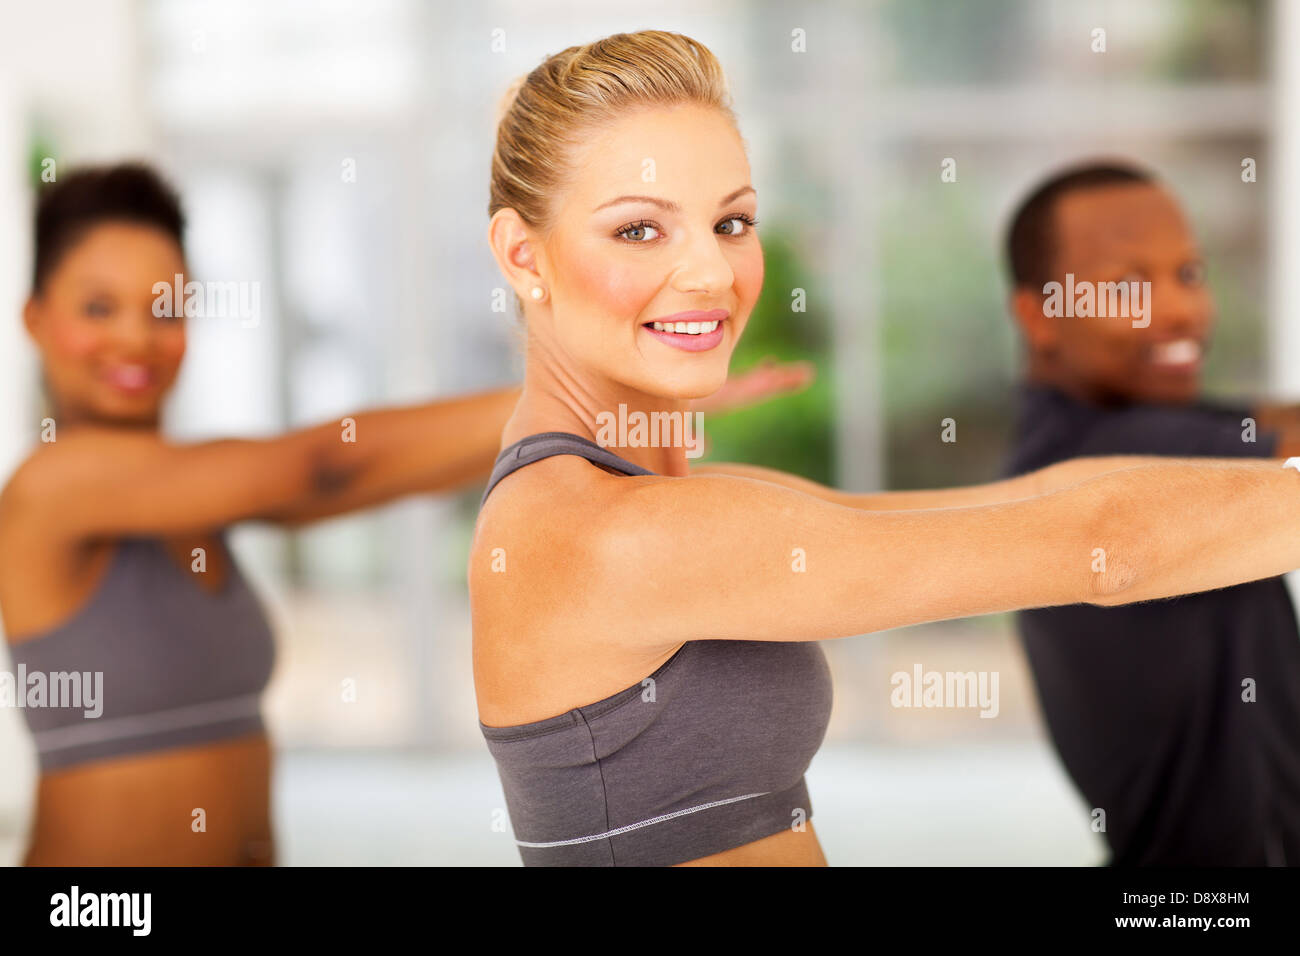 smiling group of fit people working out - Stock Image